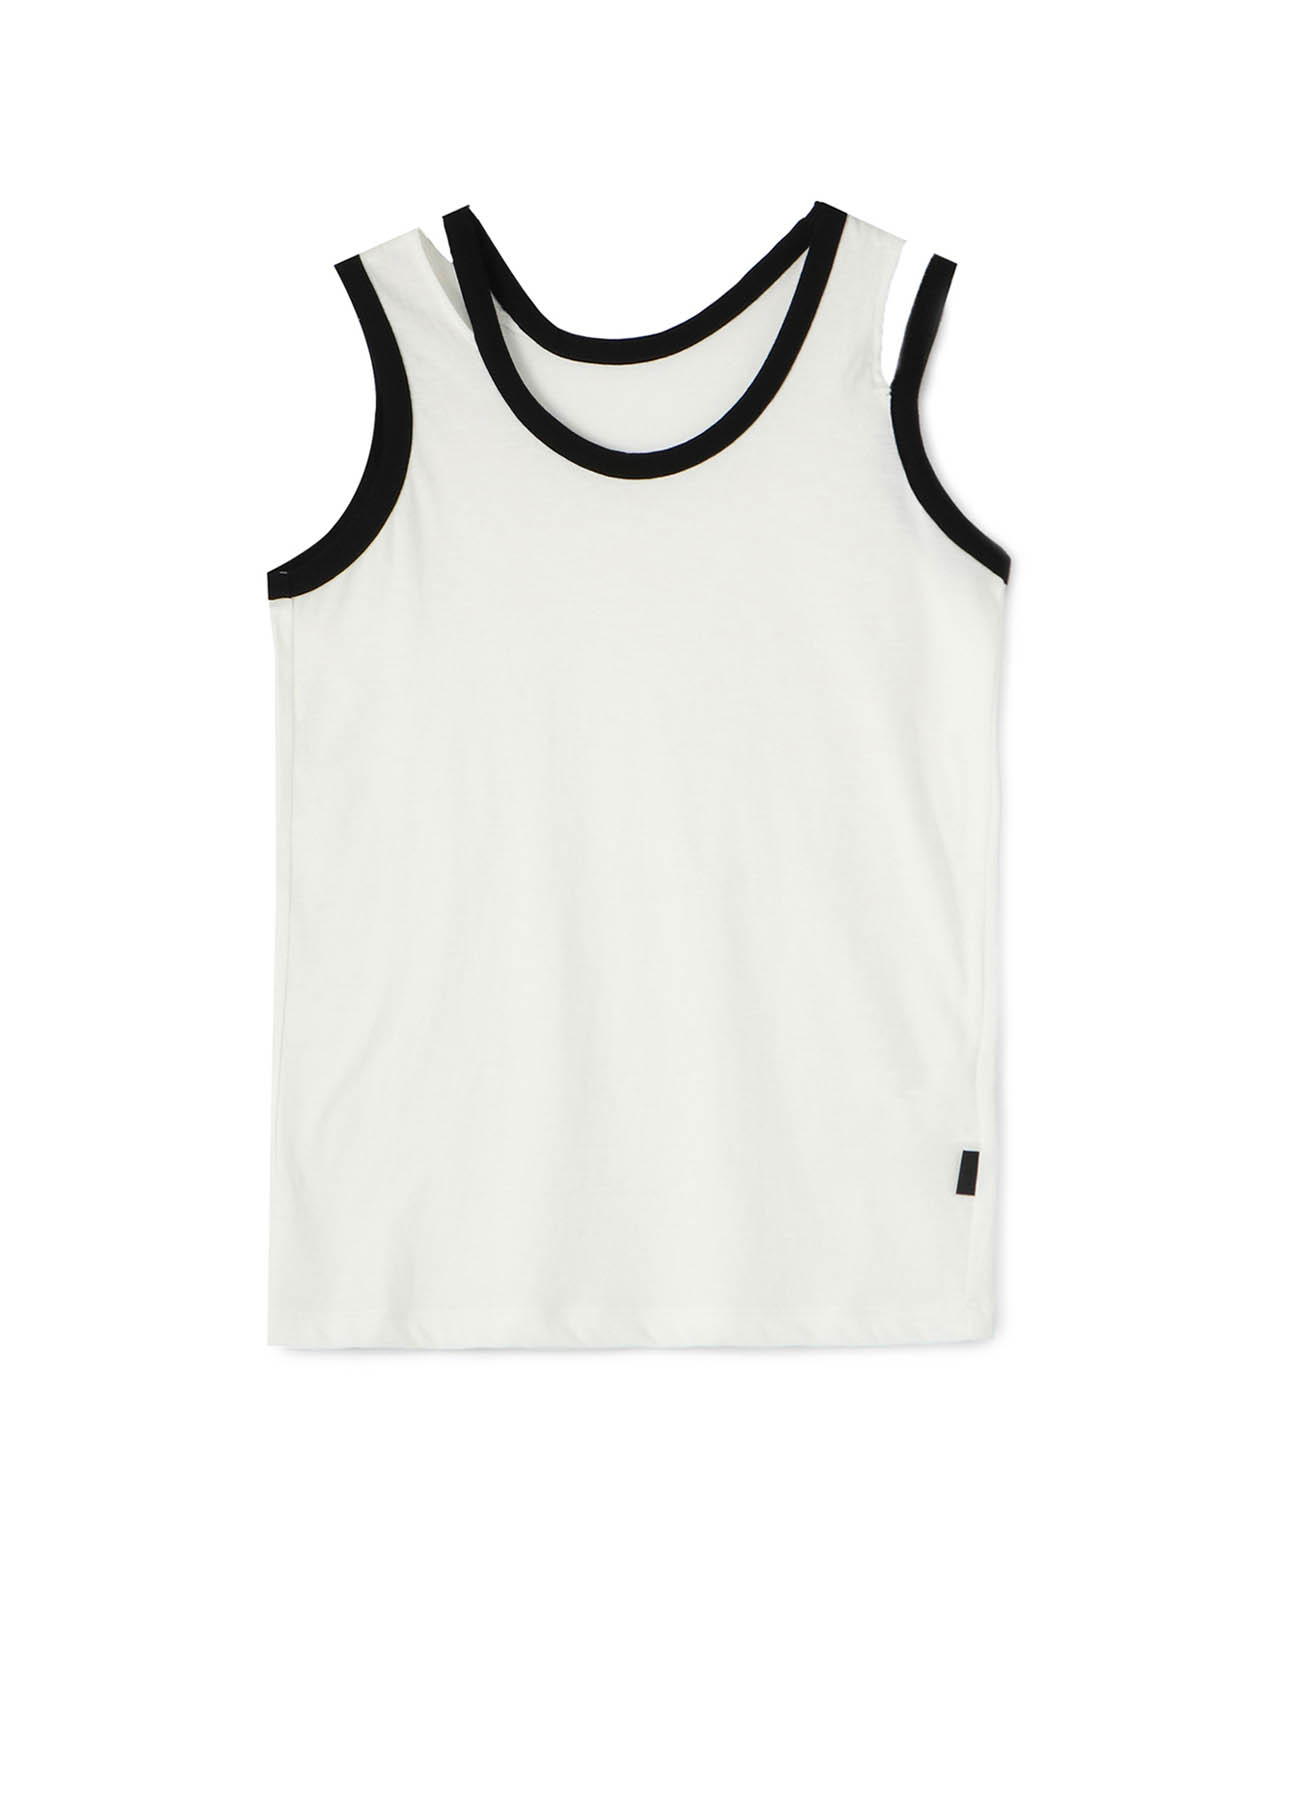 30 ULTIMA LOOSE B/BINDER TANK TOP